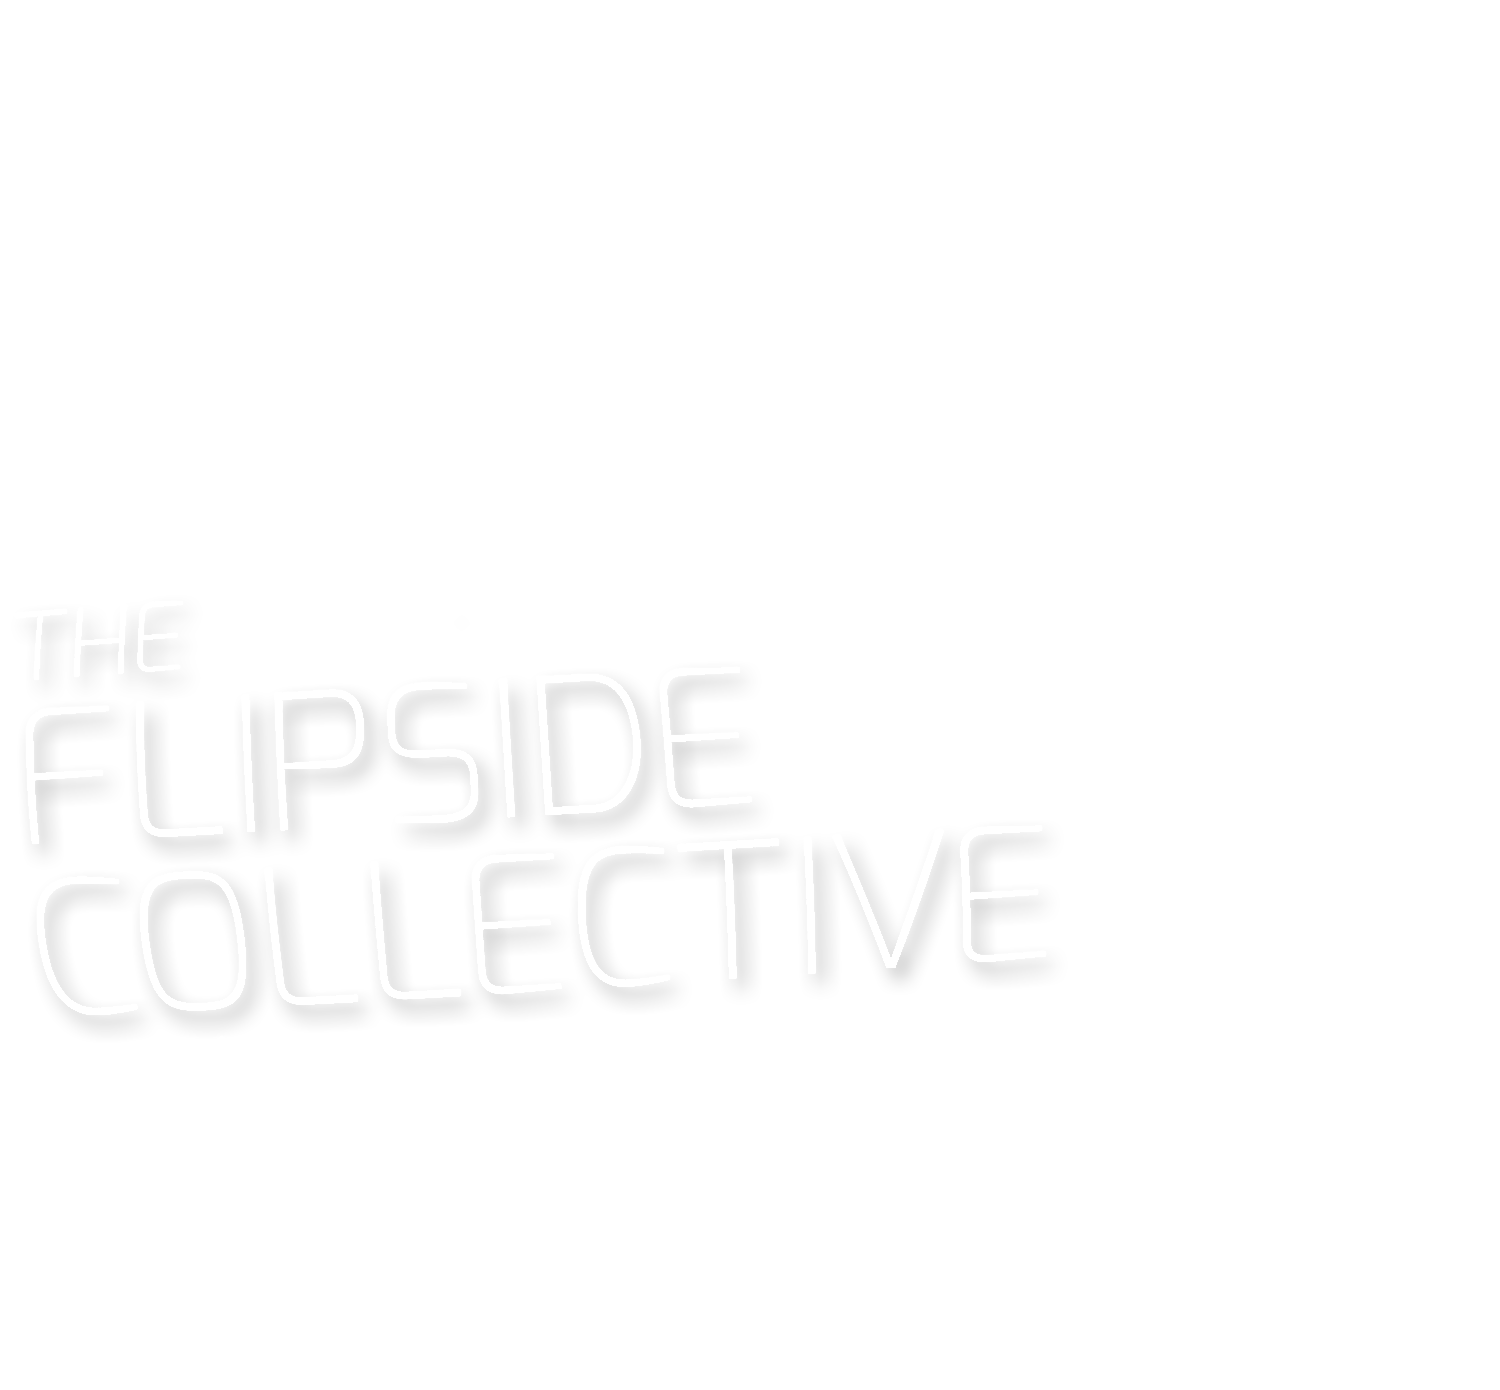 THE FLIPSIDE COLLECTIVE